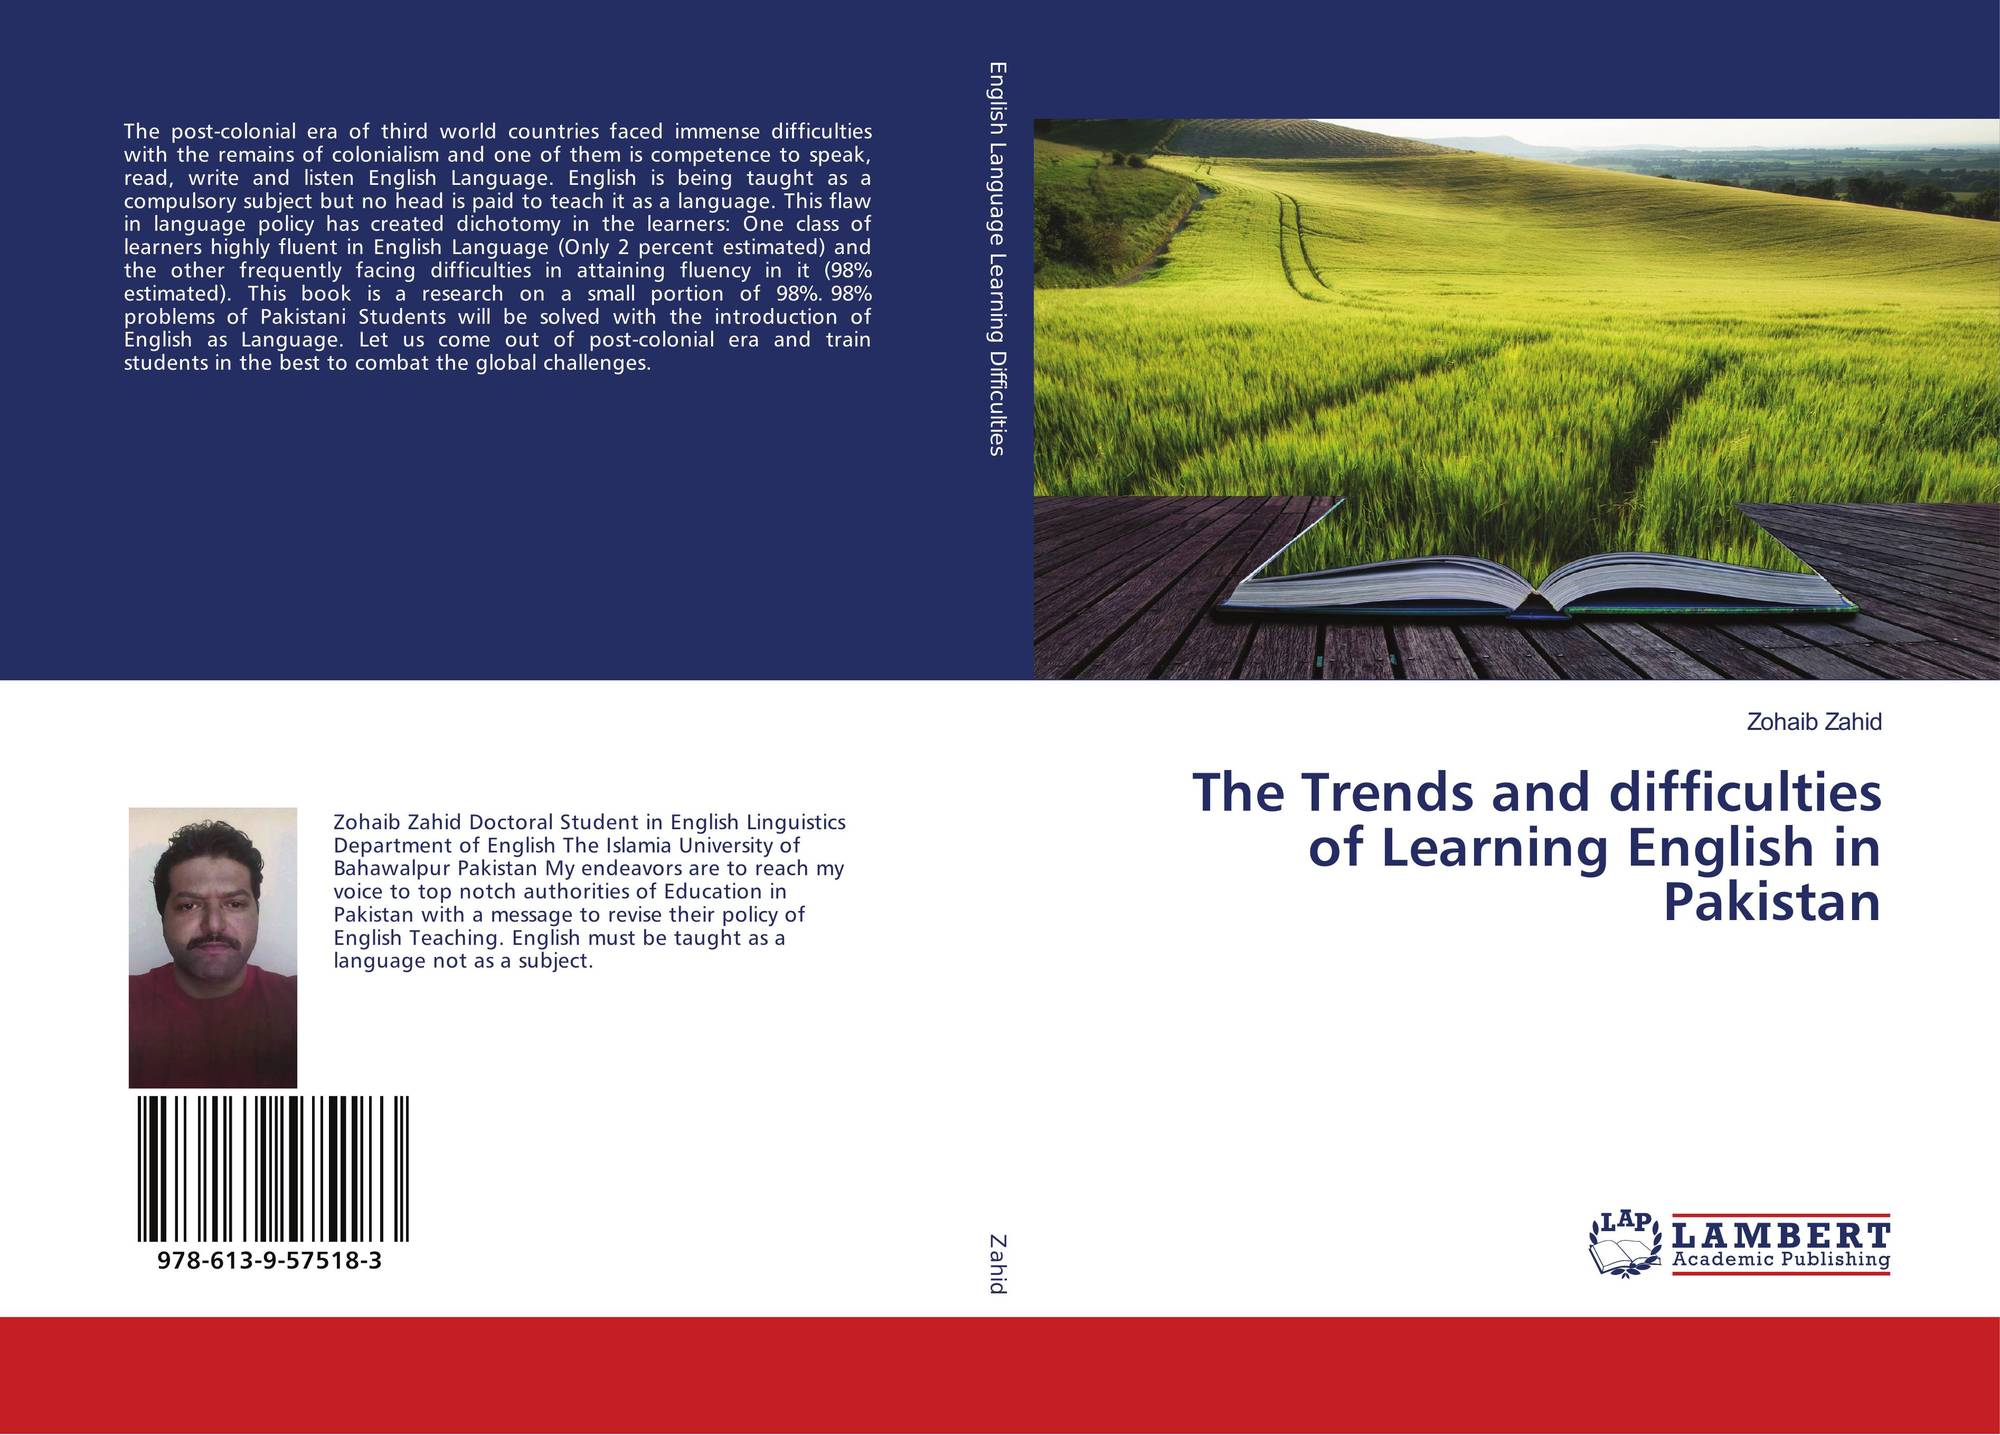 The Trends and difficulties of Learning English in Pakistan